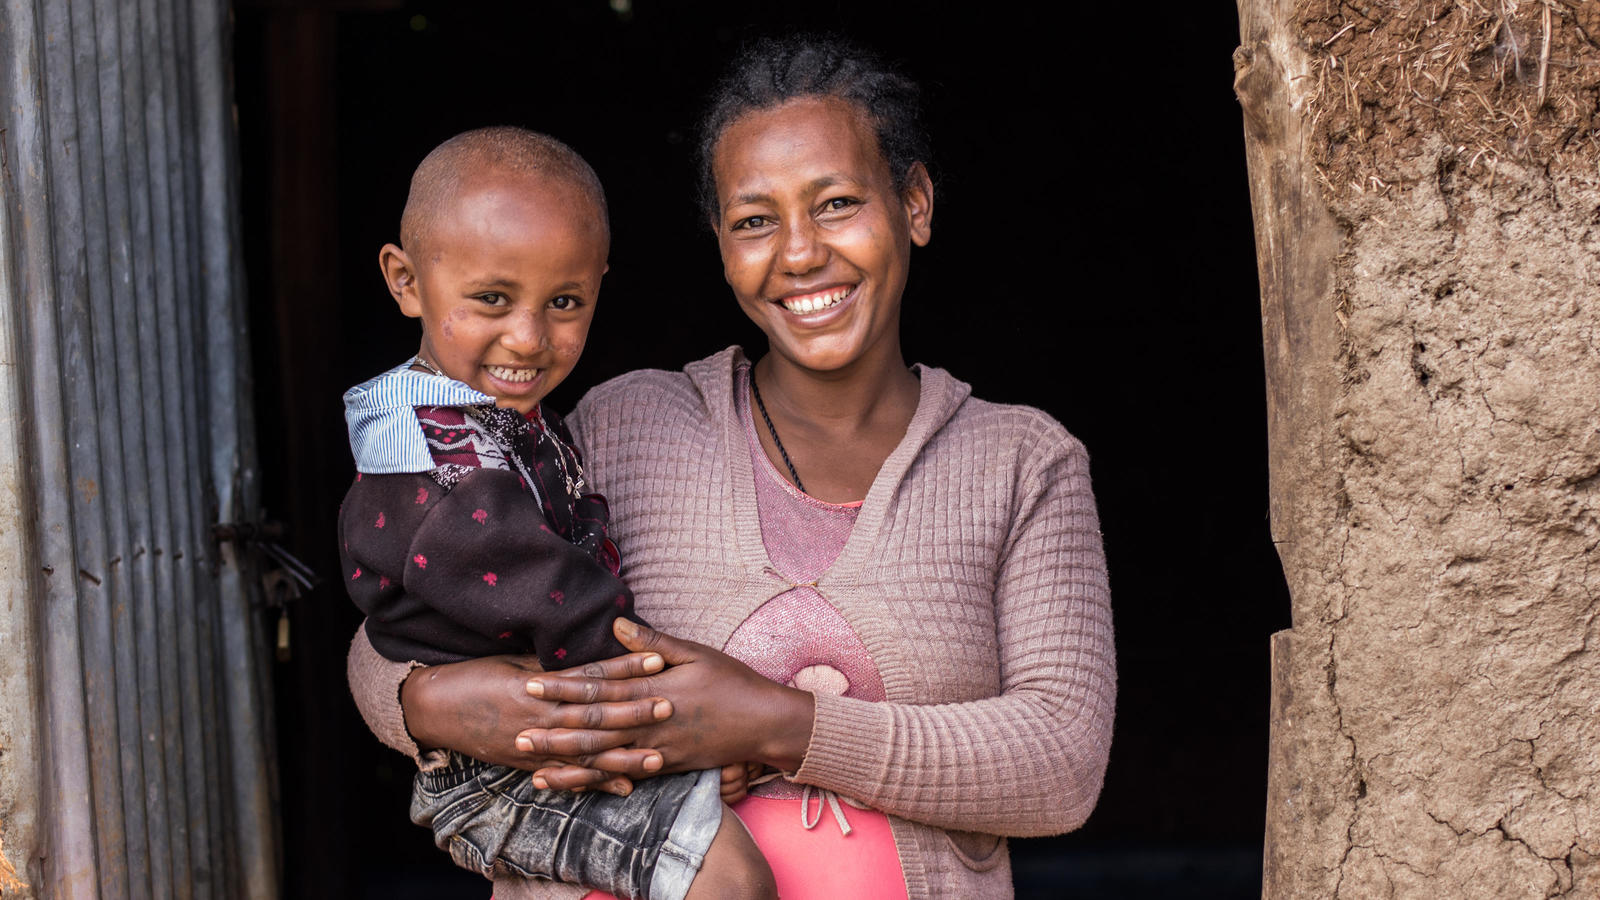 Tiru and her daughter at their house in Derkewa, Ethiopia. October 2020.